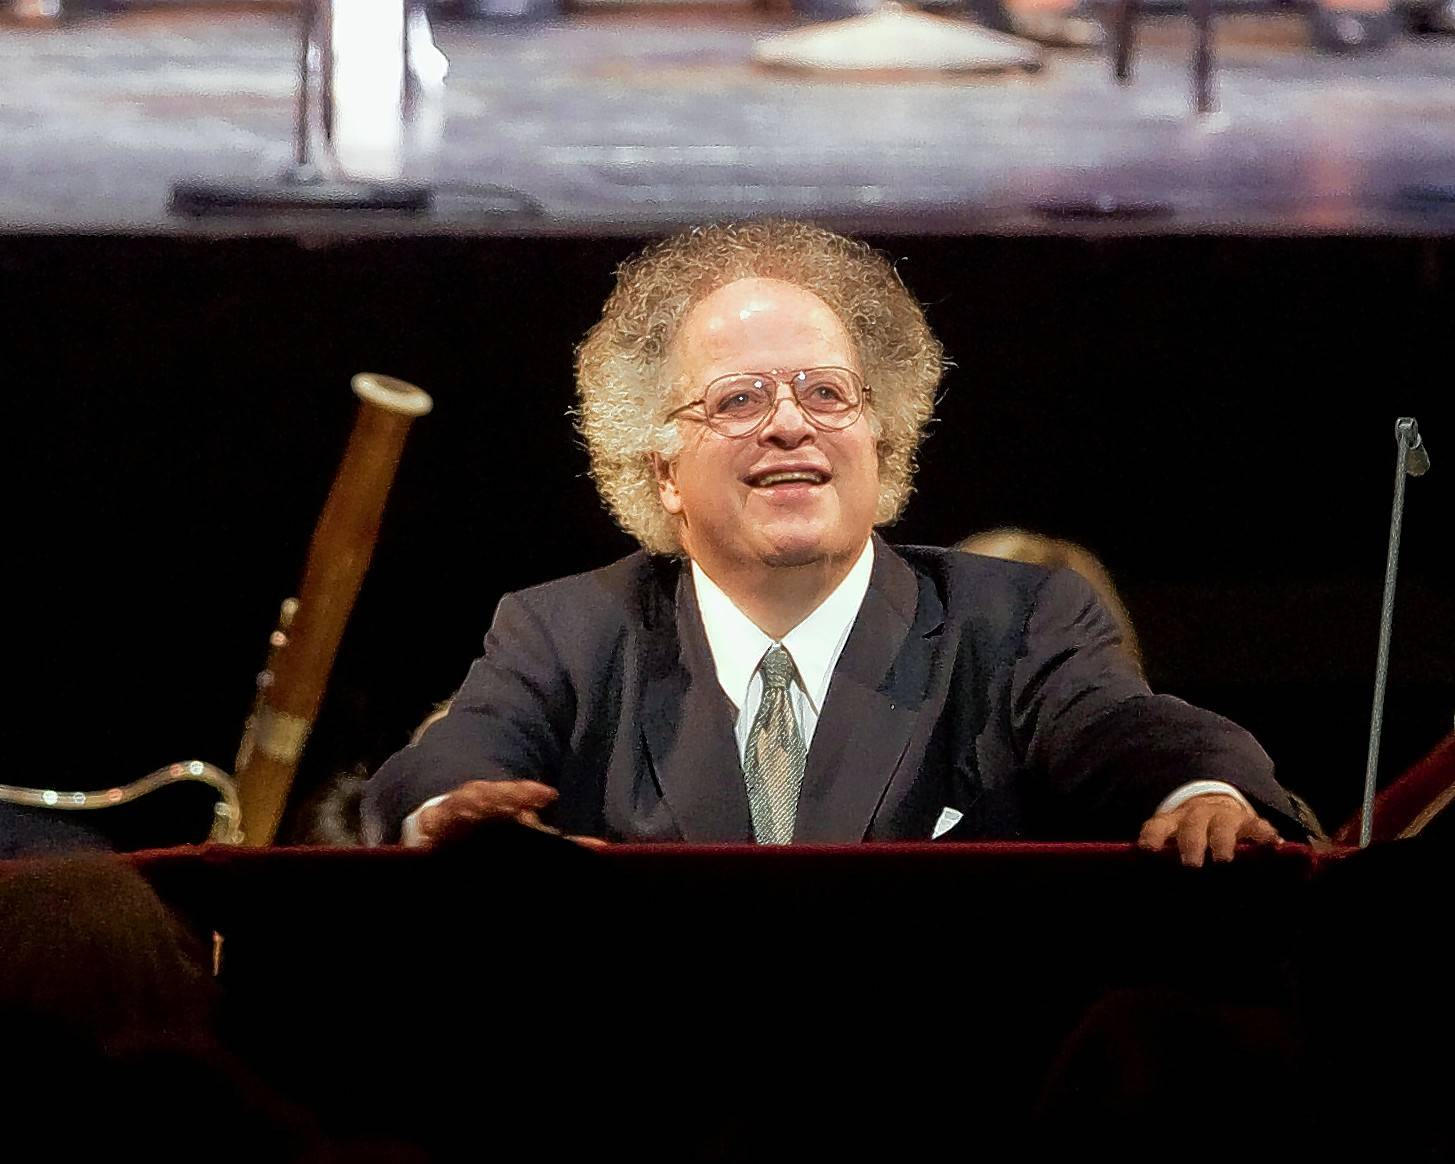 Ravinia Festival in Highland Park has cut all ties with well-known conductor James Levine, who is currently under investigation by authorities in Lake County and at the Metropolitan Opera for sexual misconduct allegations.